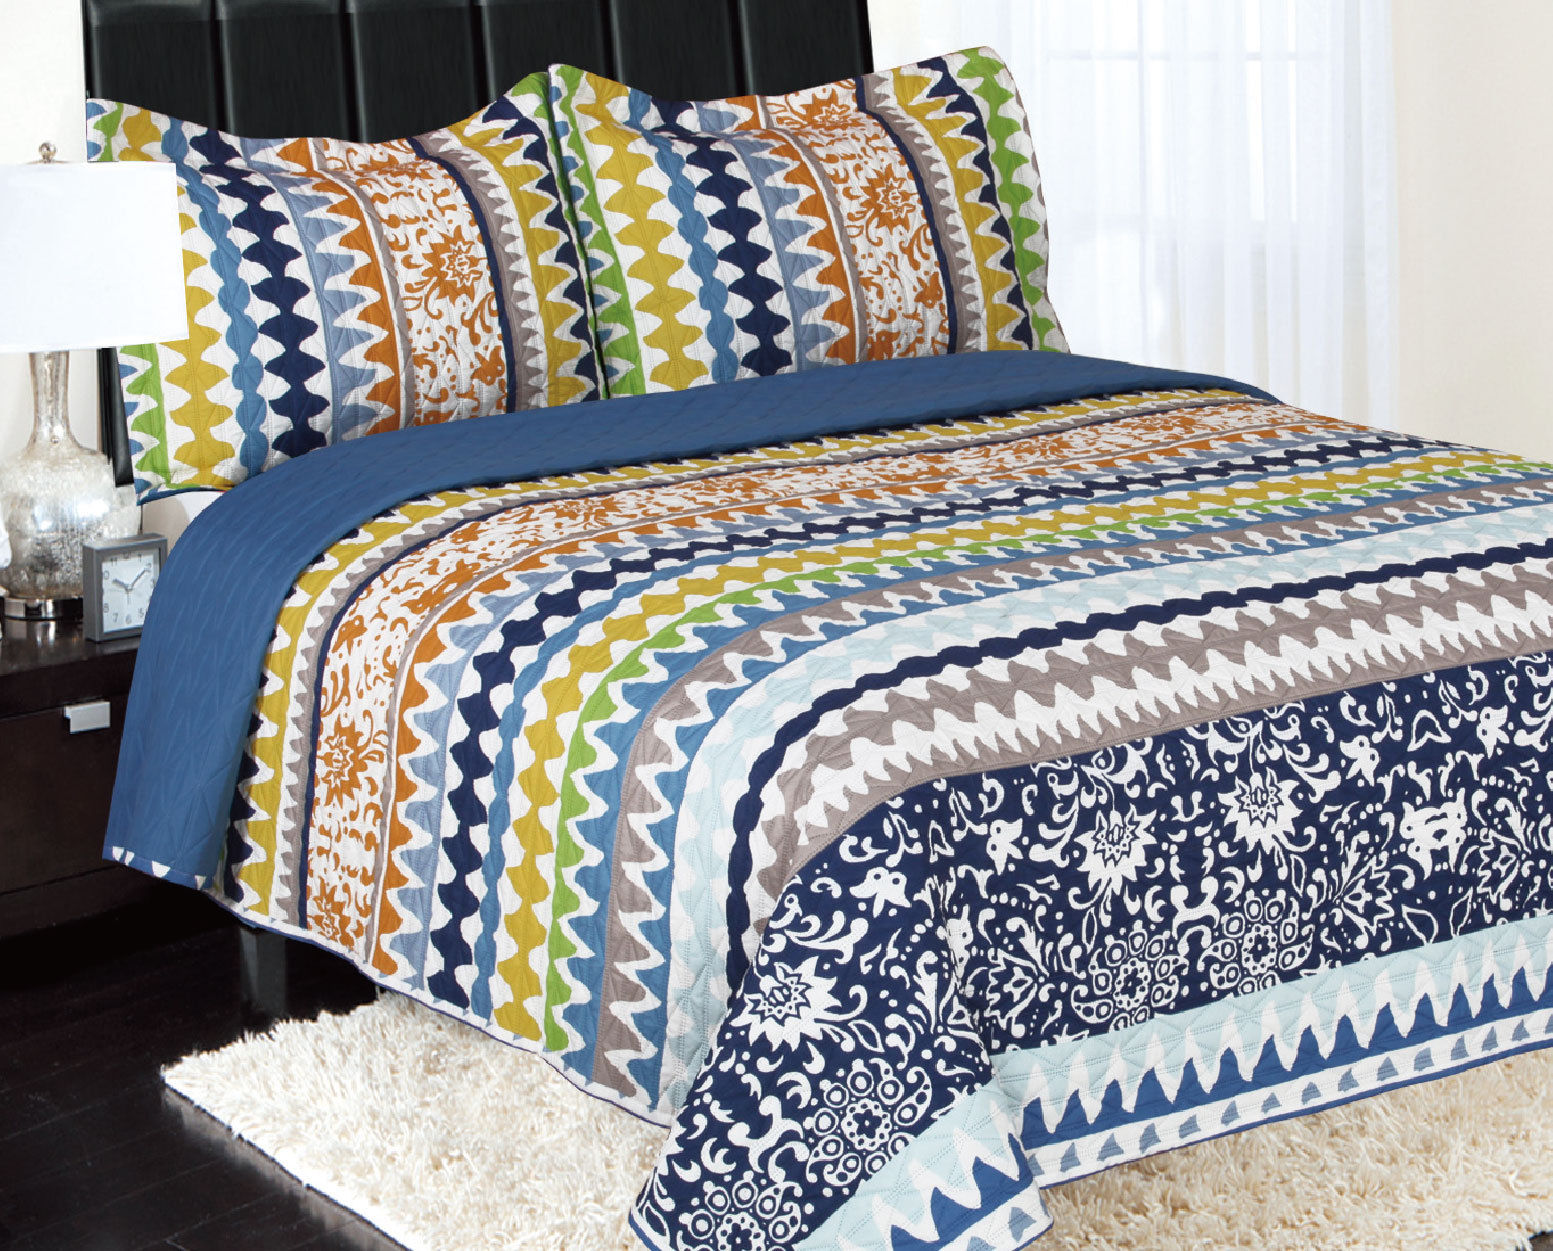 Click here to buy 3-Piece Reversible Quilted Printed Bedspread Coverlet Blue Orange Green yellow Waves Queen....